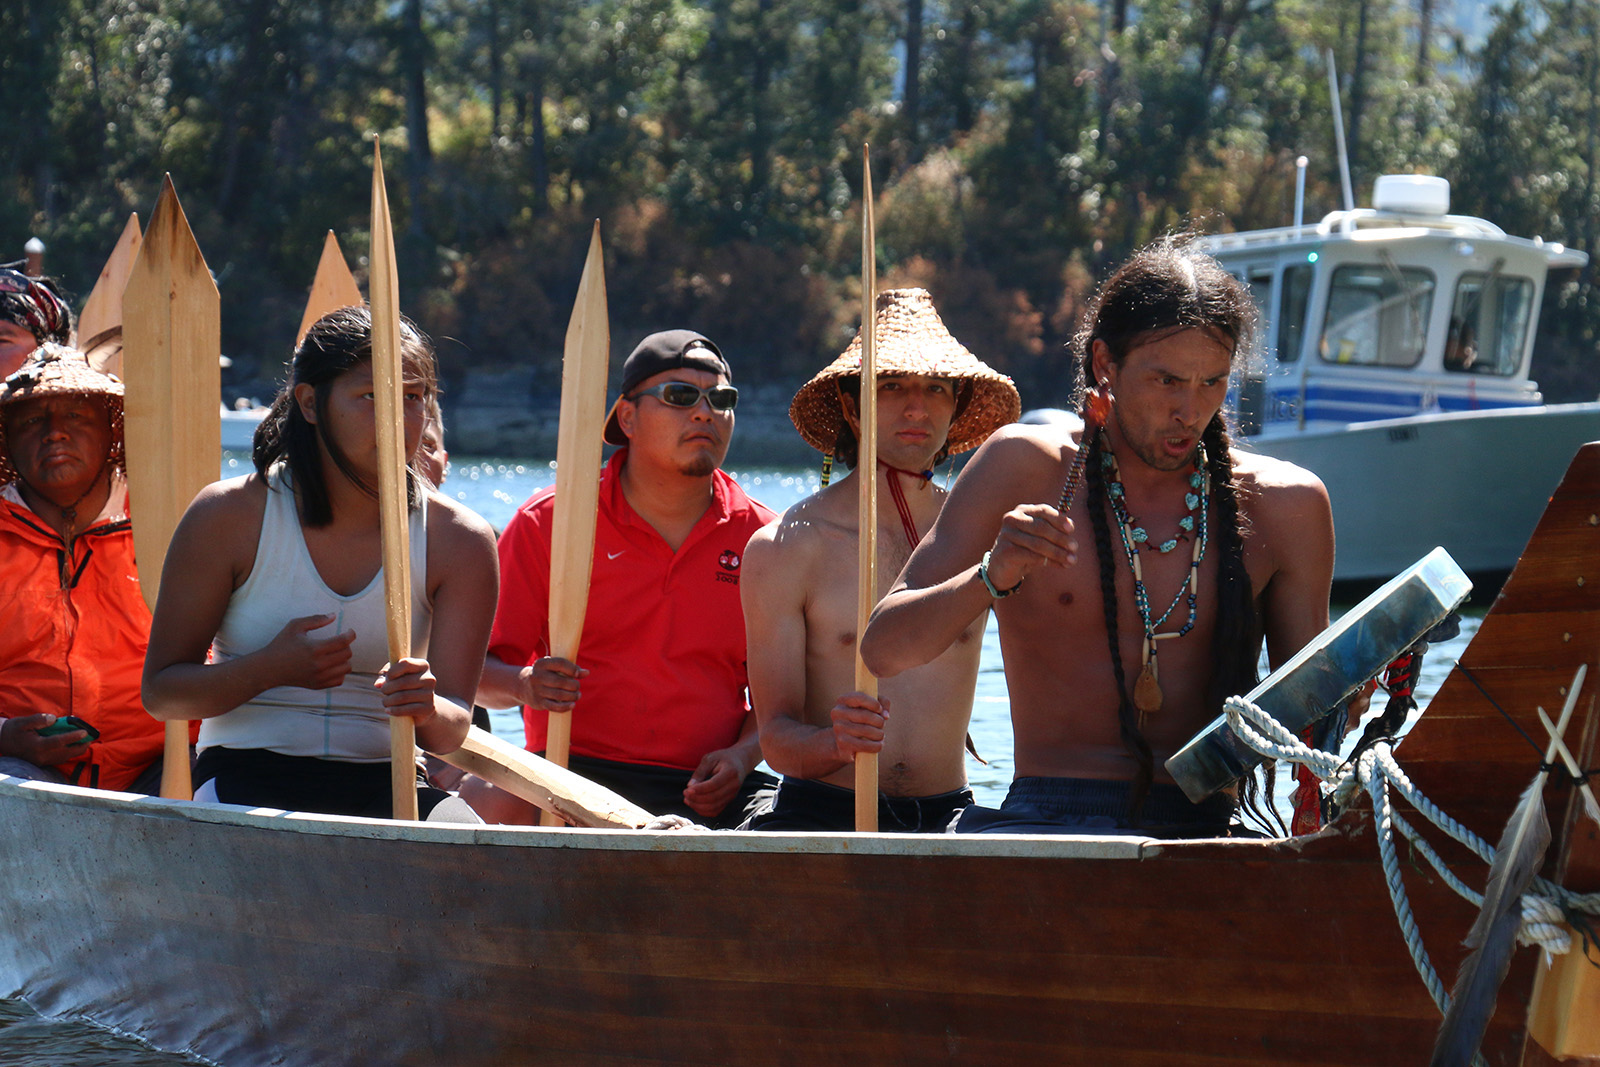 The Quinault crew sings a spirited paddle song as they arrive on Stz'uminus shores.